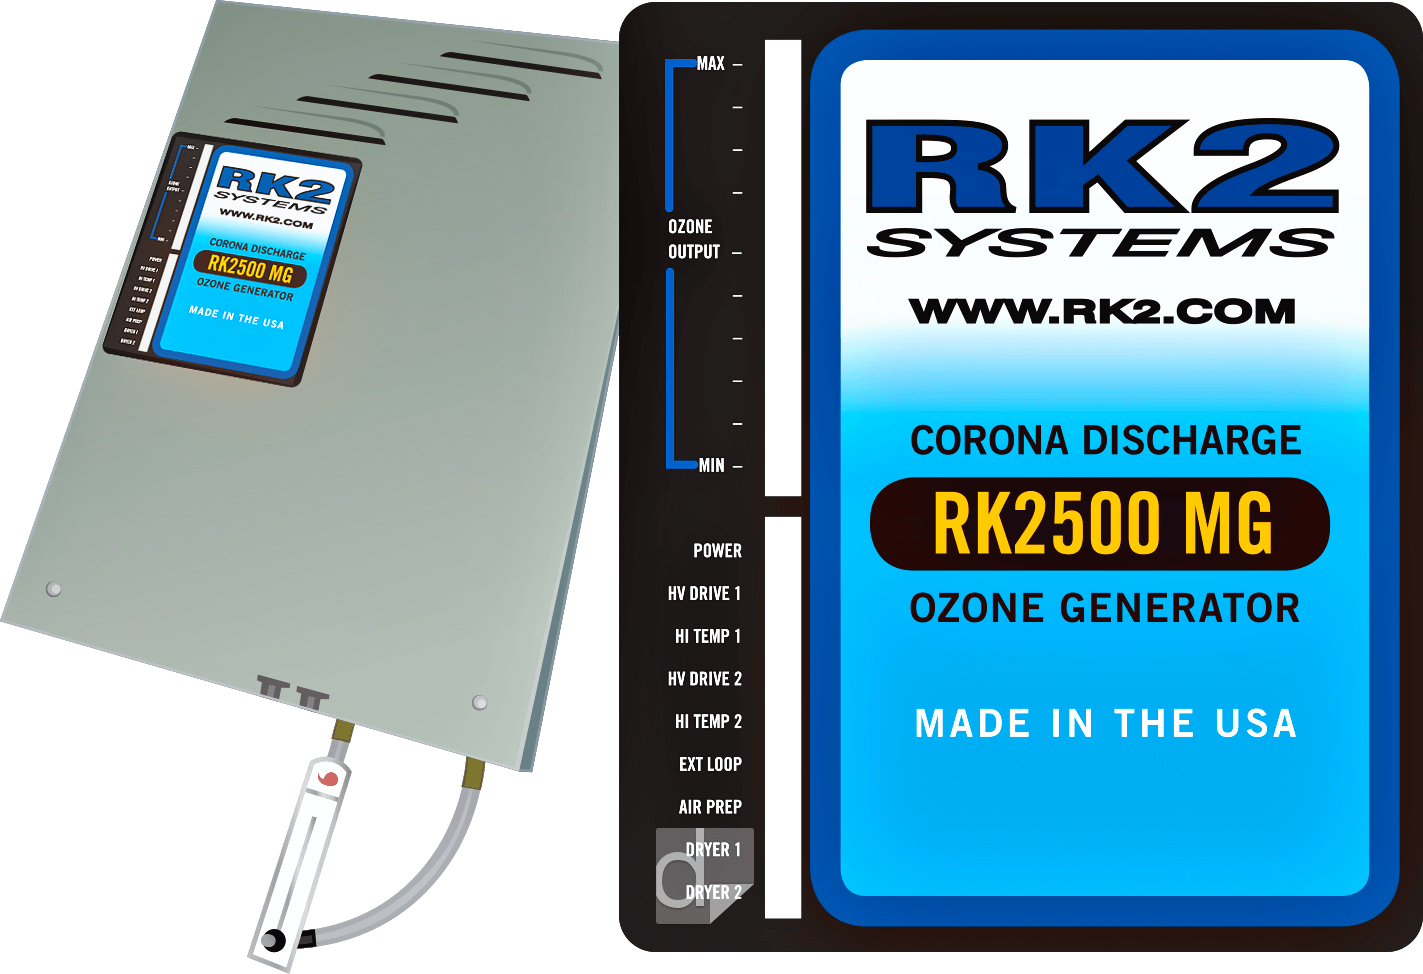 Custom die cut 5.5 inches by 6.5 inches Lexan label subsurface printed by Dilco for RK2